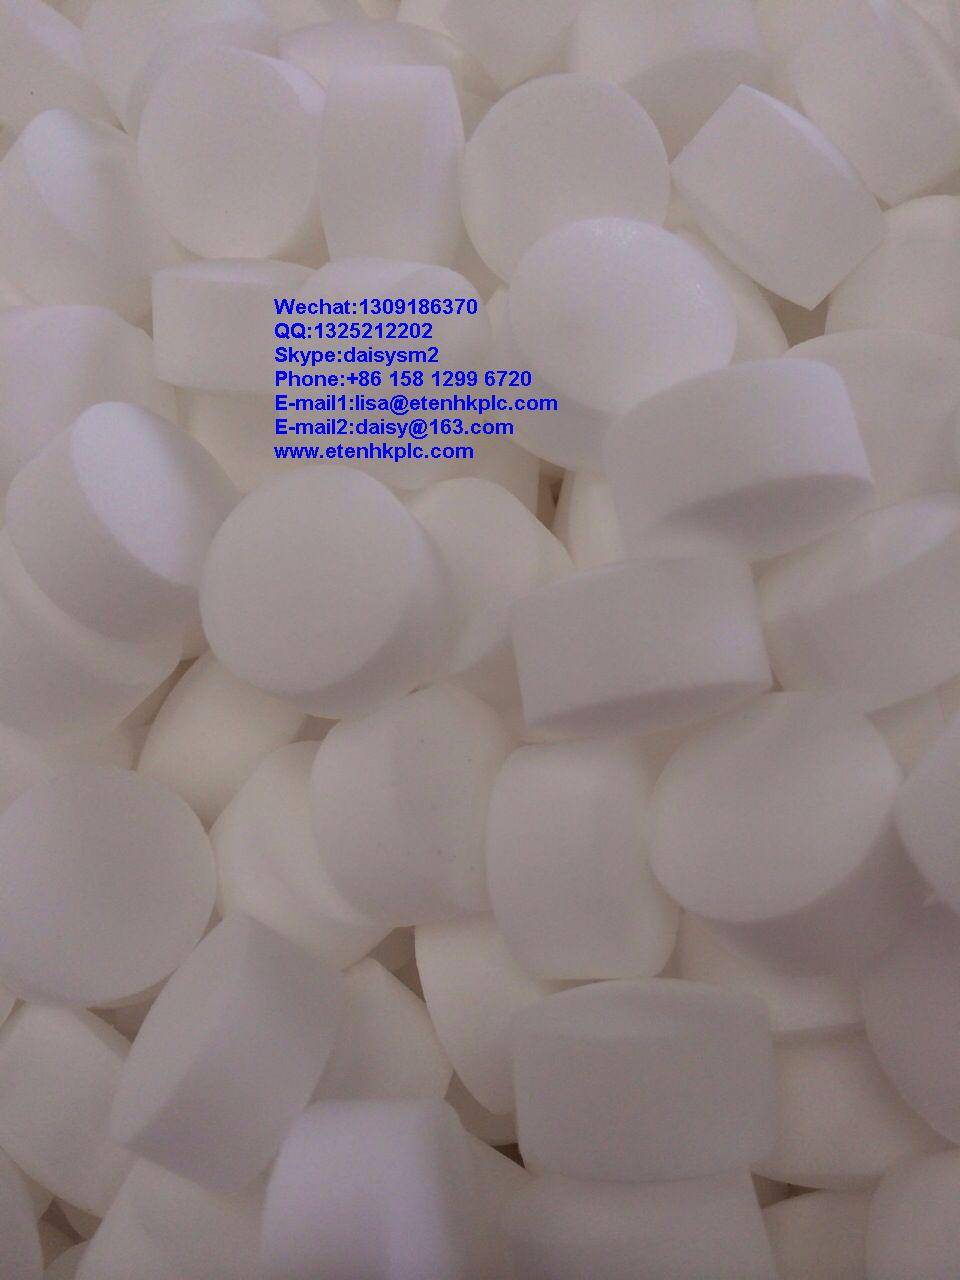 Tablet Water Softener Salt,Water Softener Salt, Water Purifier Salt,Manufacturer of Water Softener S